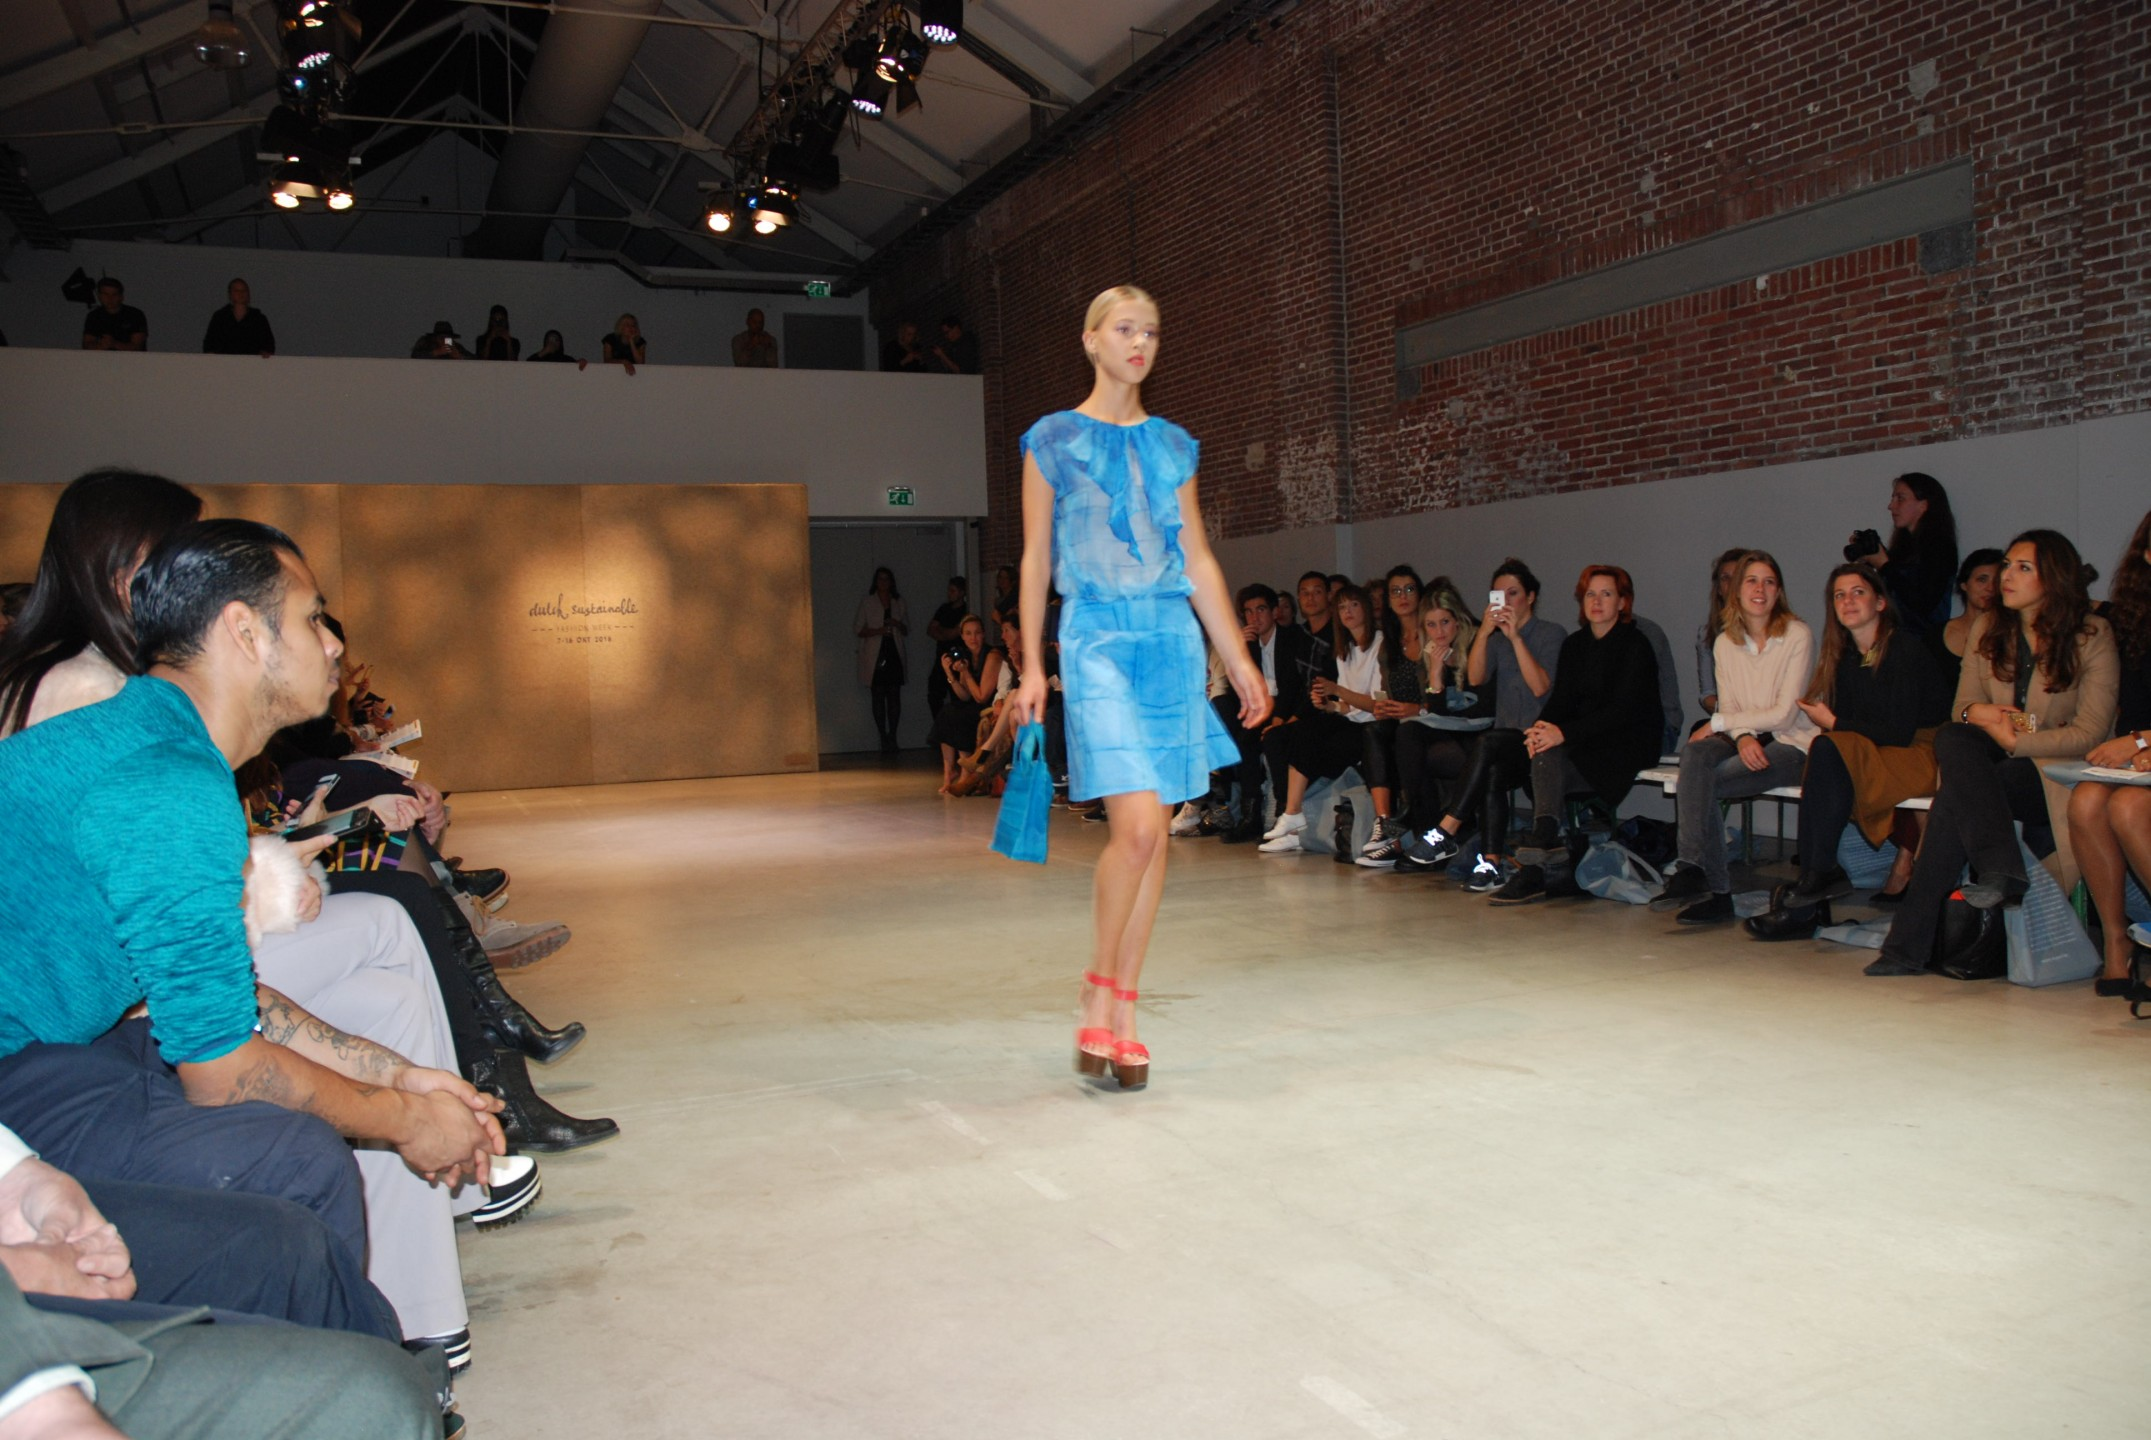 Zowel lof als kritiek tijdens de Dutch Sustainable Fashion Show